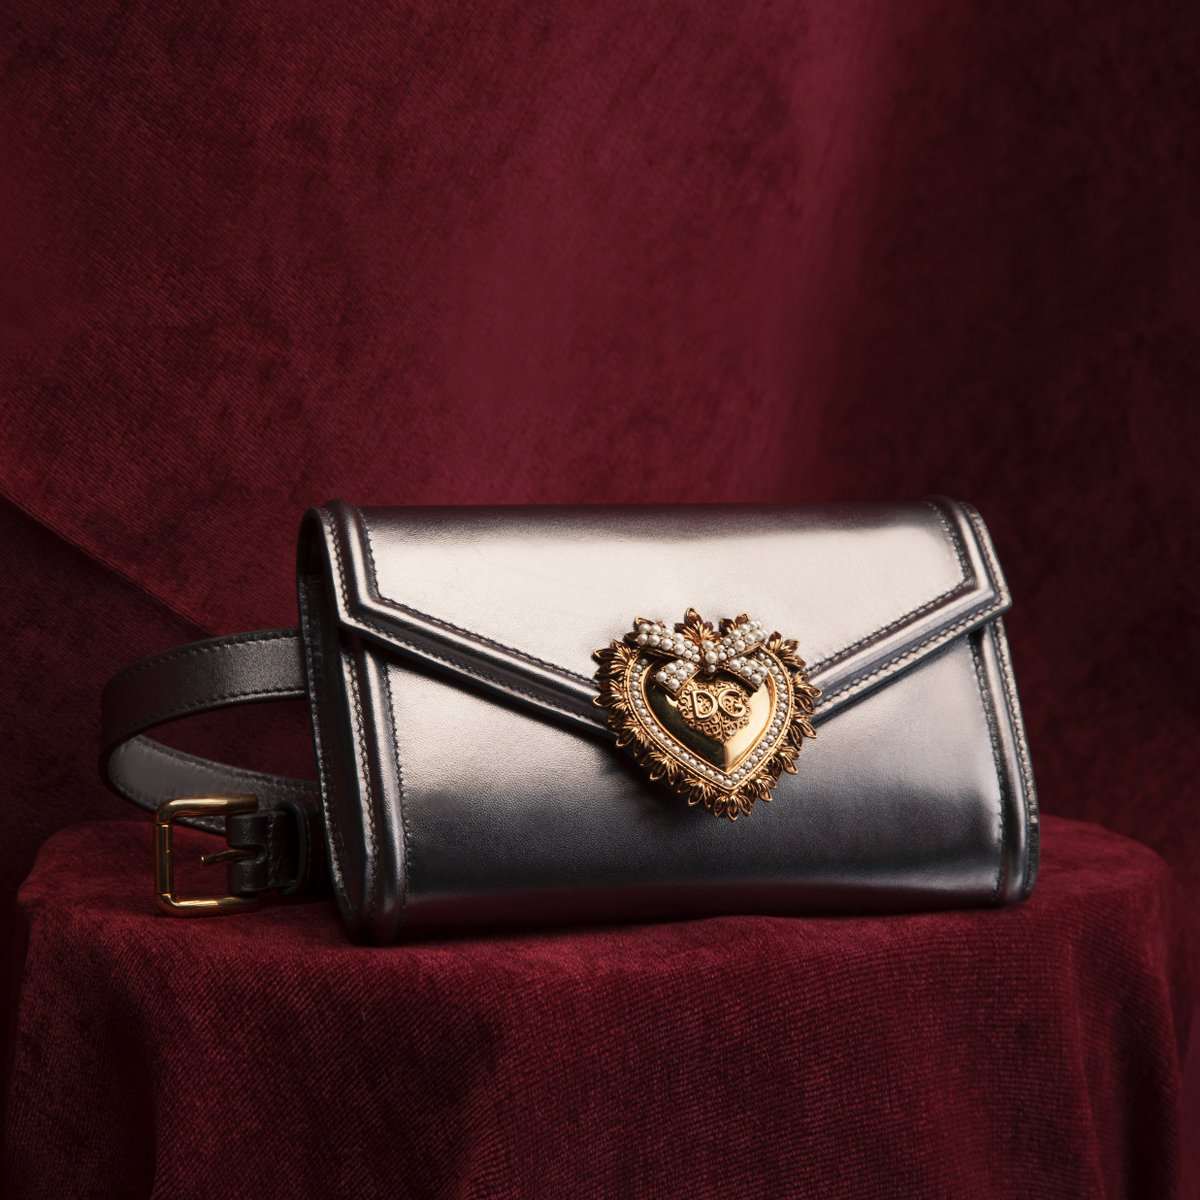 Celebrate Valentine's Day with the most sacred heart of them all. #DGDevotionBag #DGWomen